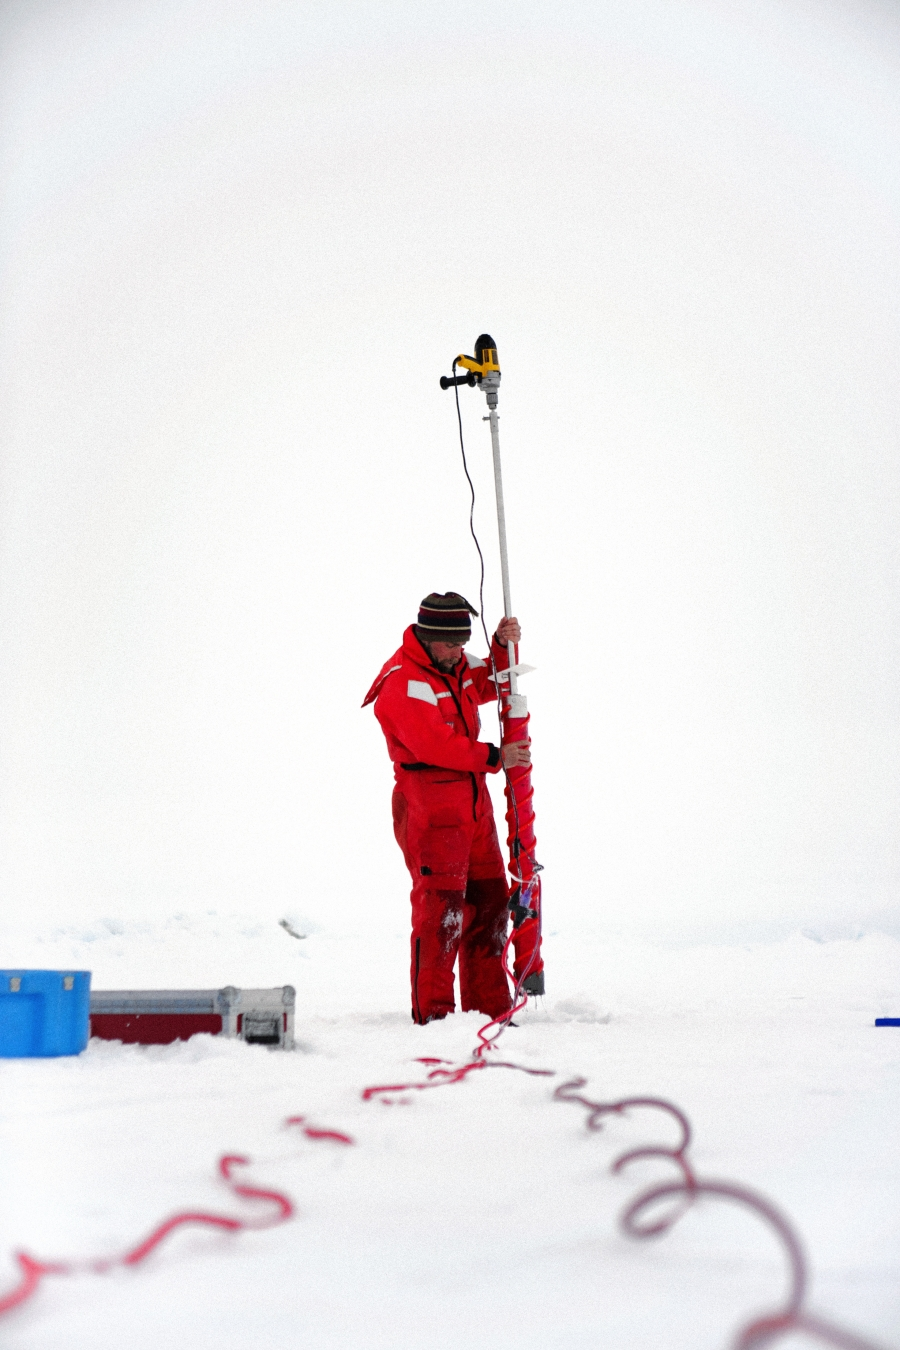 Chris Polashenski uses an electric drill to core out a sample of sea ice. He uses the cores to investigate the tiny cracks in the ice that may or may not allow water to drain from melt ponds